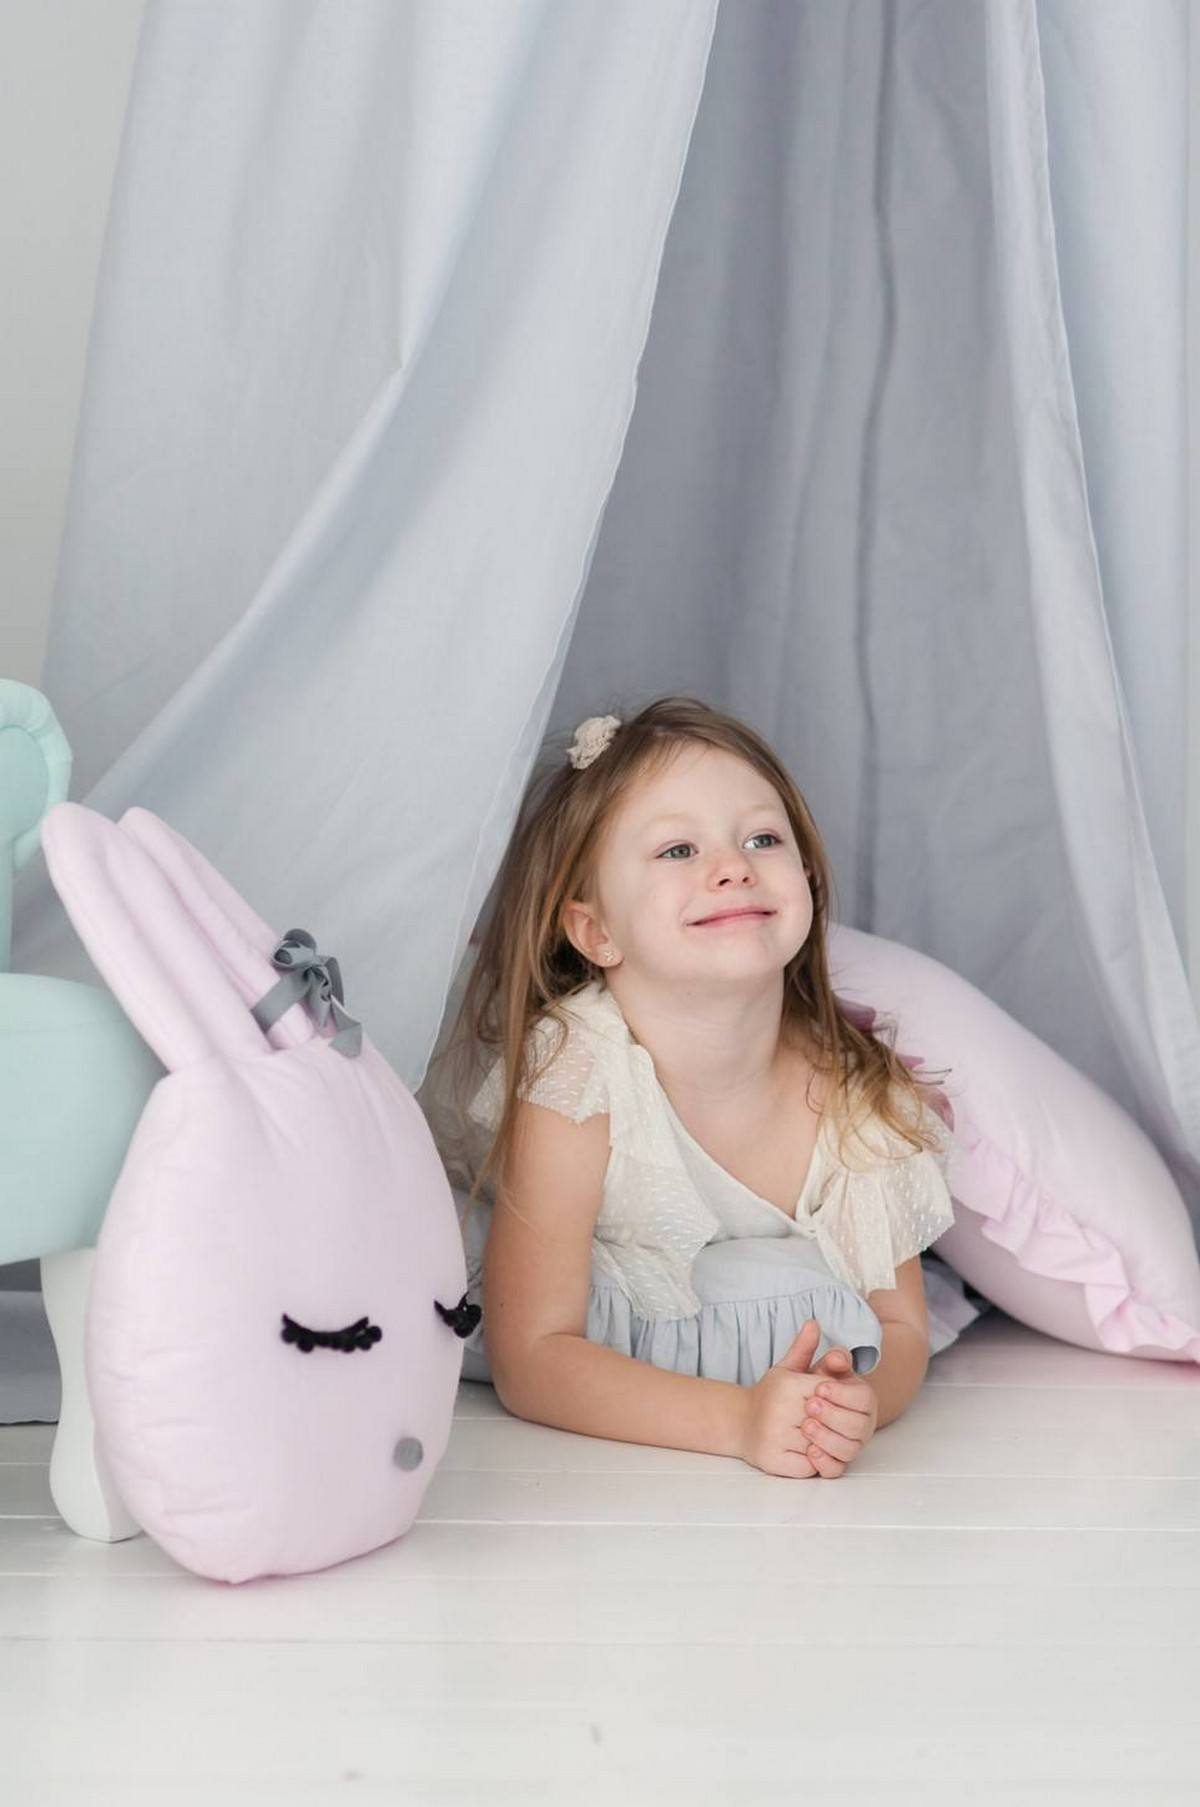 Fabulous Decorative Pillows for Kids